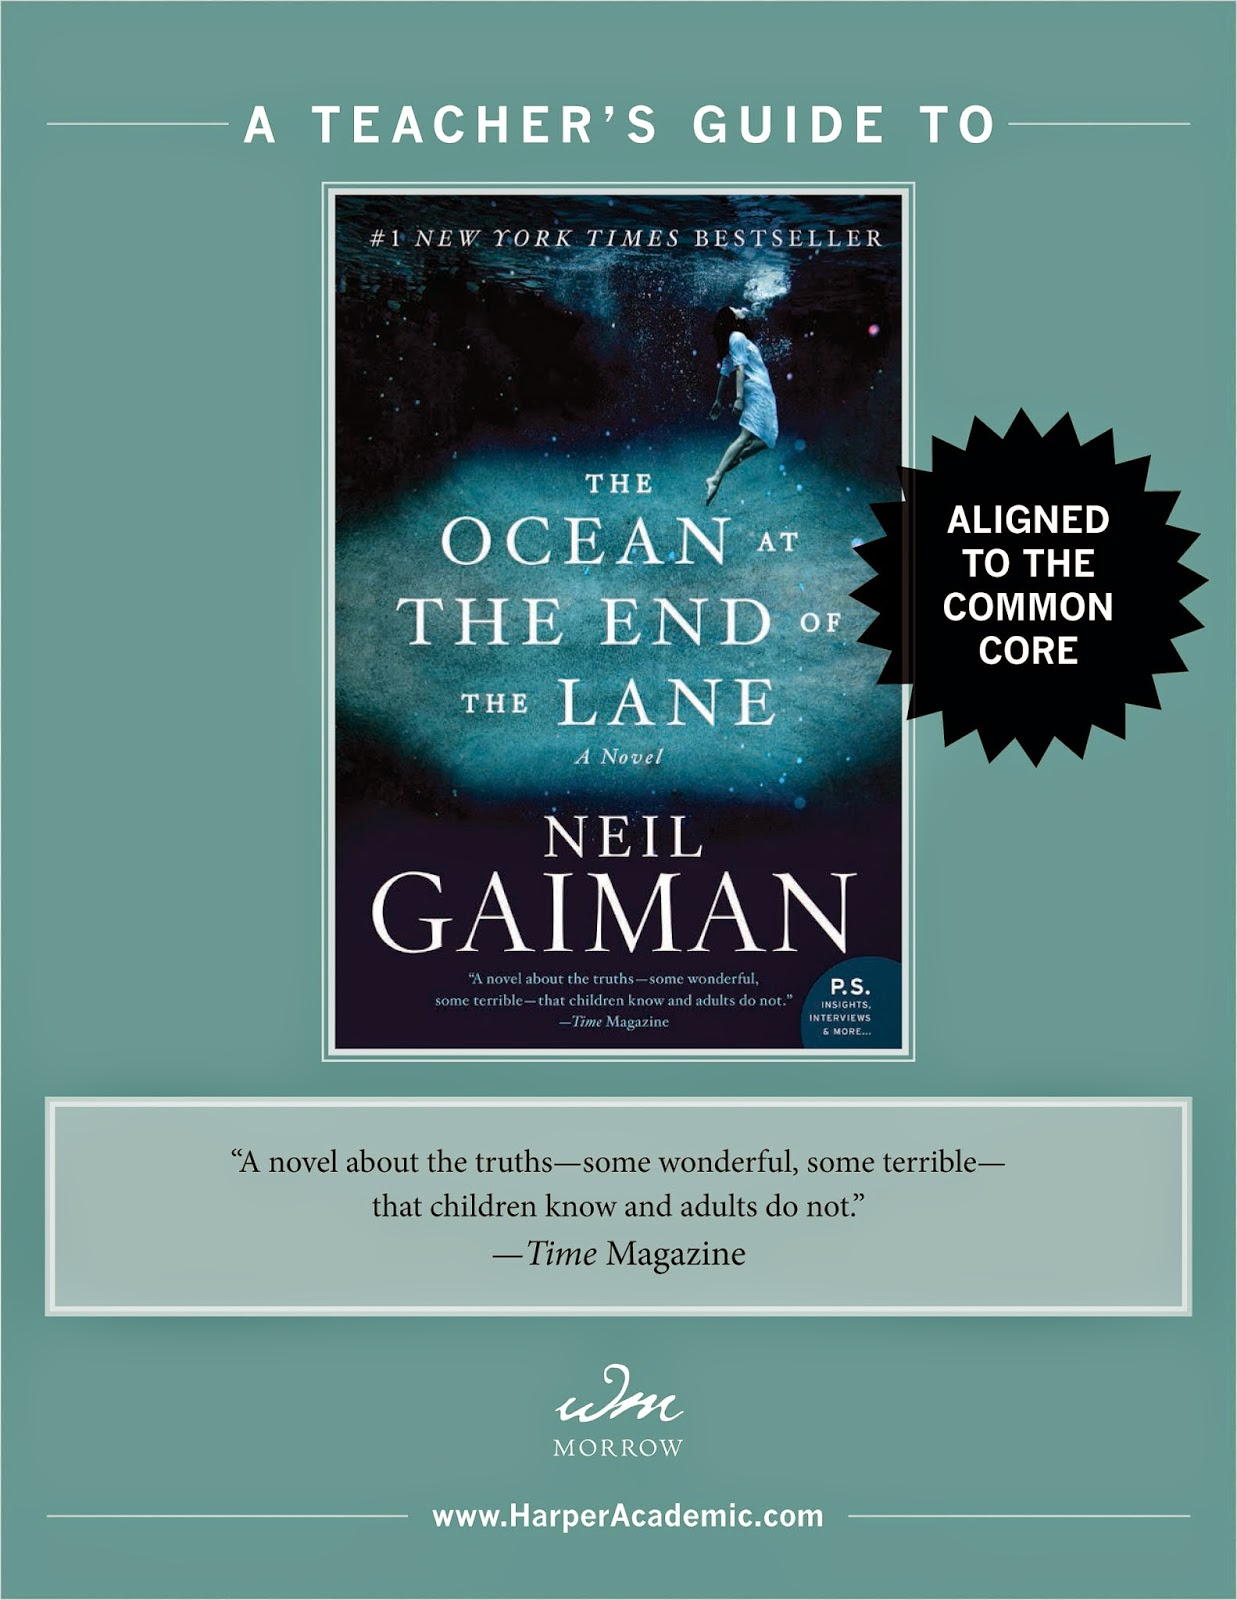 OCEAN AT THE END OF THE LANE by Neil Gaiman